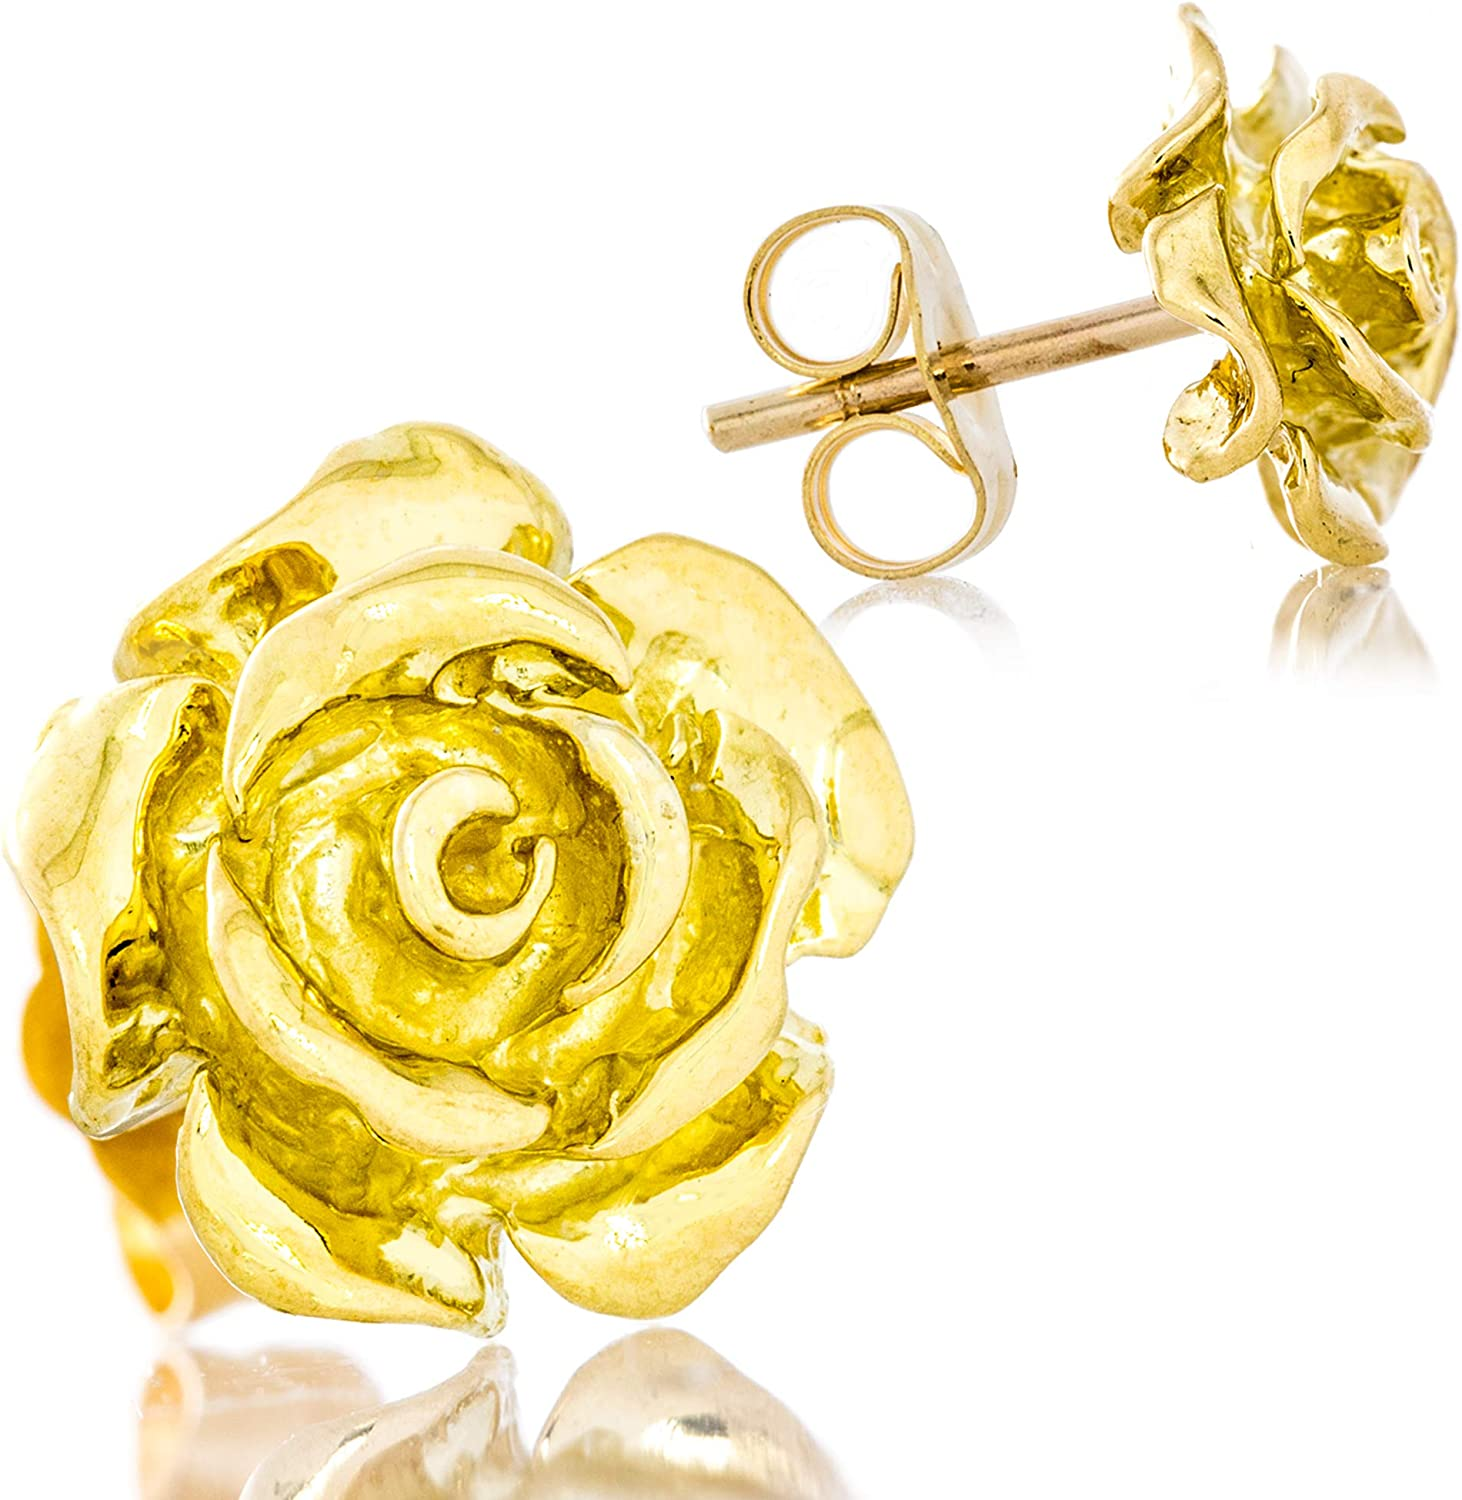 Solid 18K Yellow Gold Rose Flower Stud Earrings Handcrafted style 3/8 inch with Post and Friction Back | 2.6g